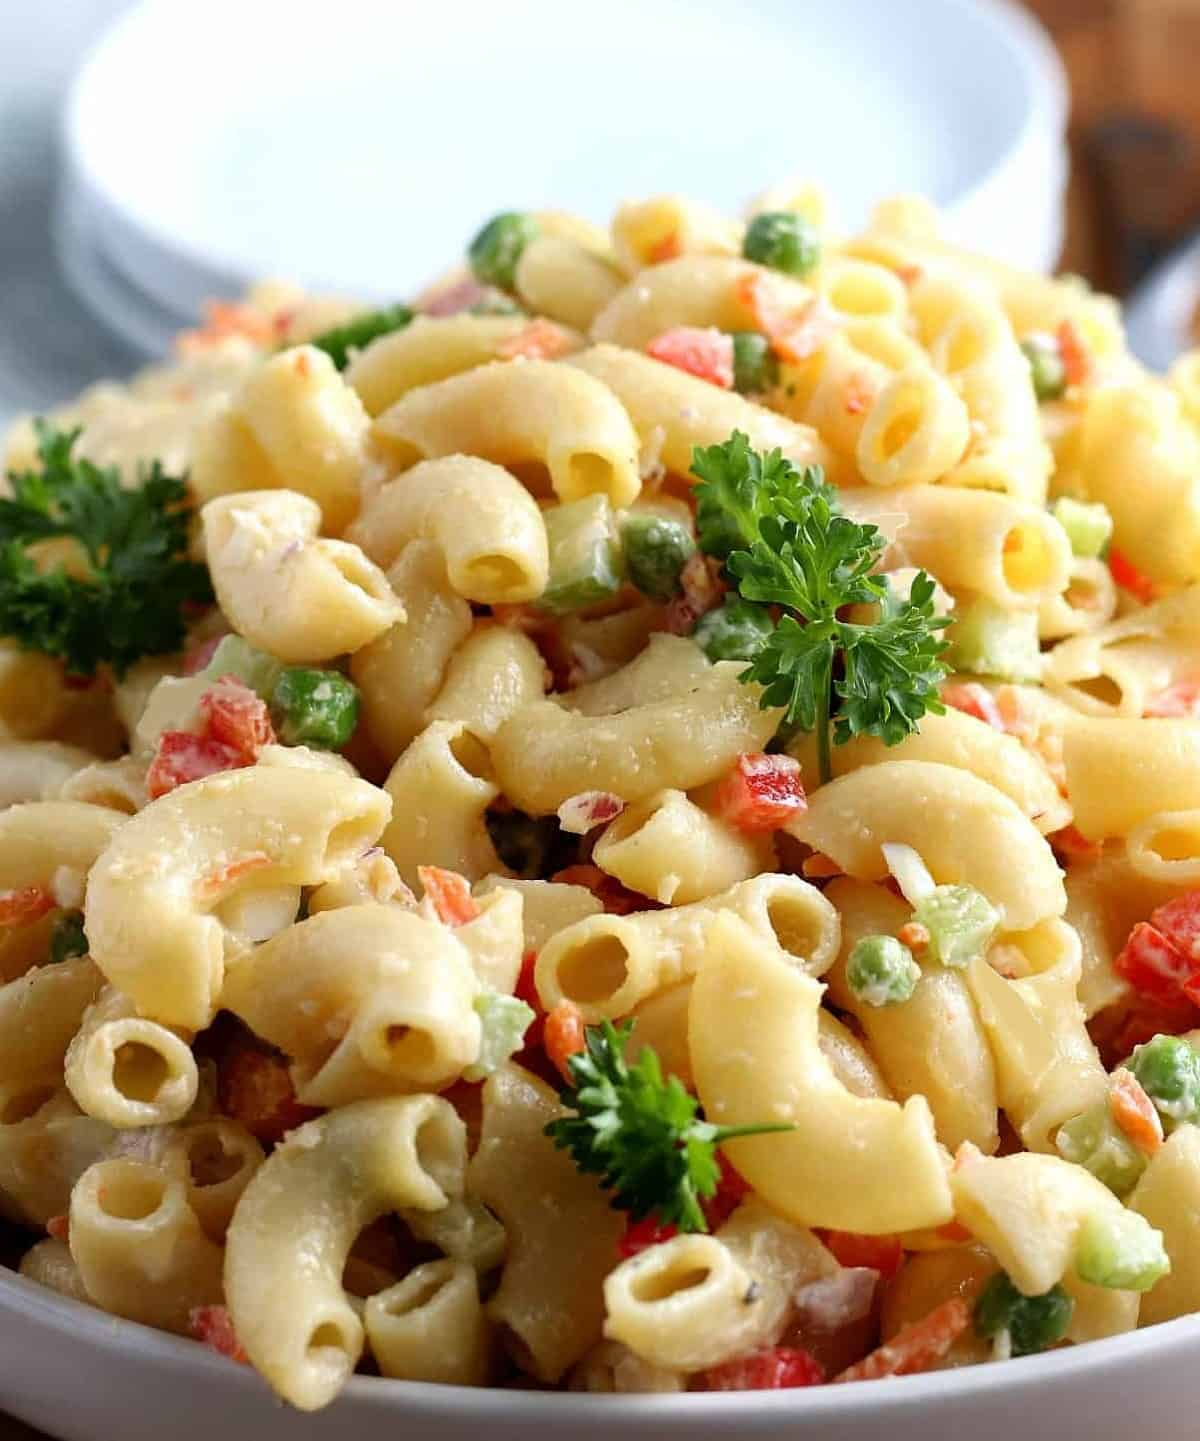 Extreme close-up of vegan macaroni salad centered and showing all of the ingredients with it's creamy dressing.